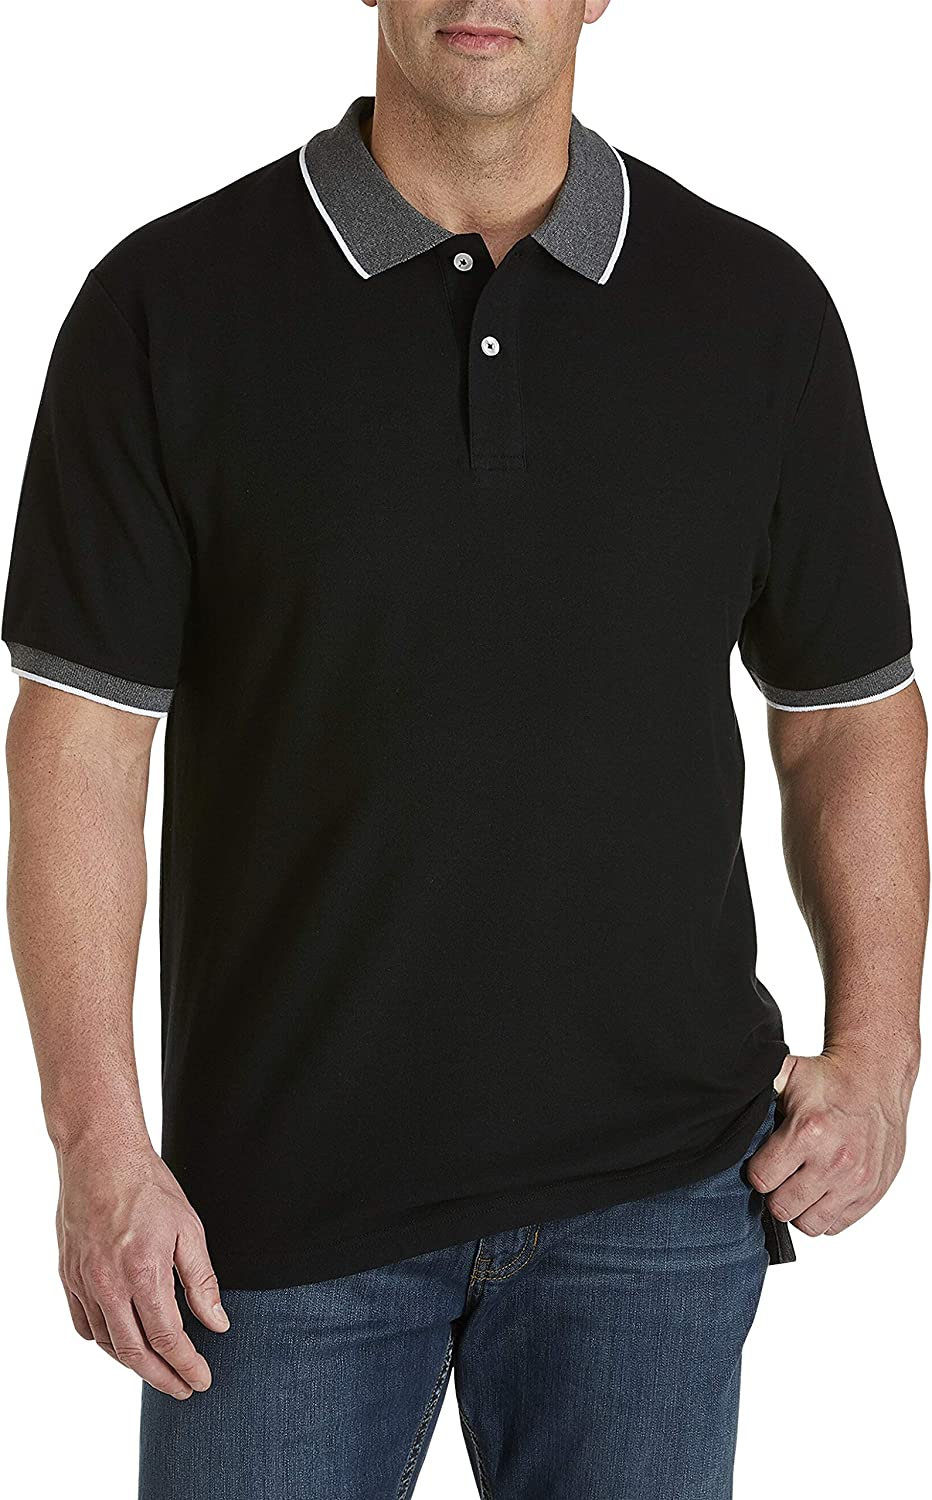 Harbor Bay by DXL Big and Tall Contrast Piqu233; Polo Shirt